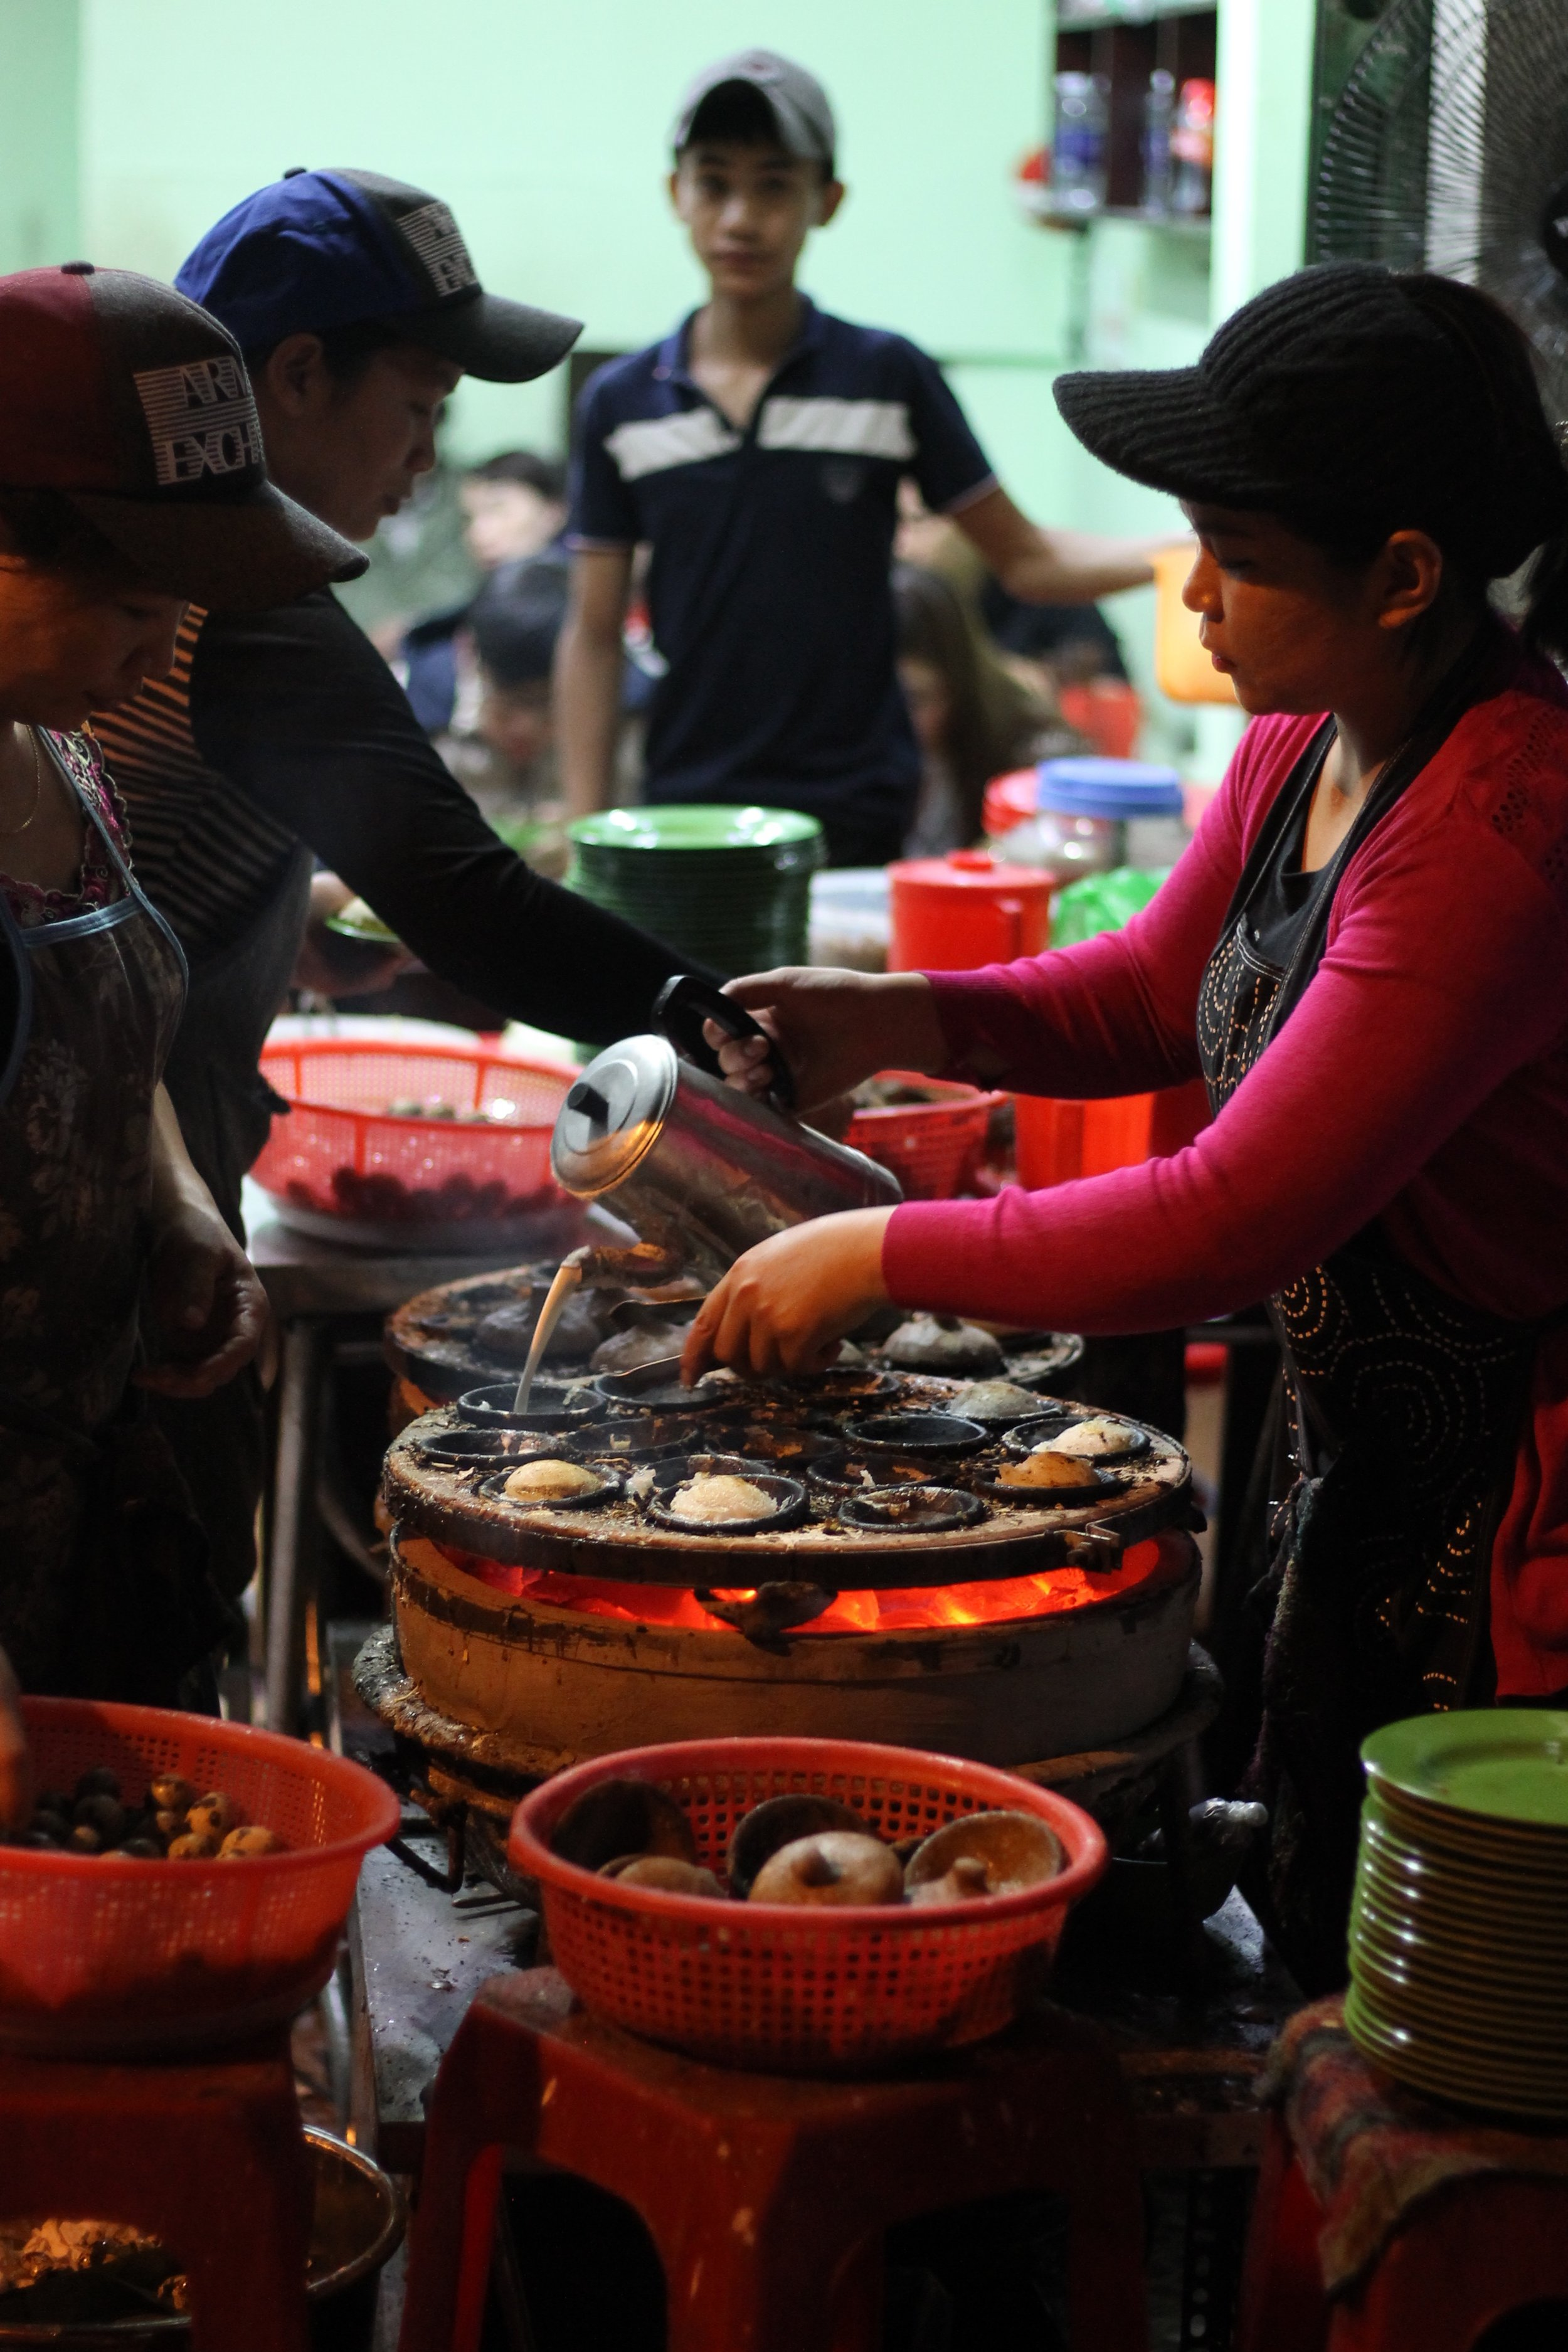 The street food scene is always its most lively at night. Taken in Da Lat.